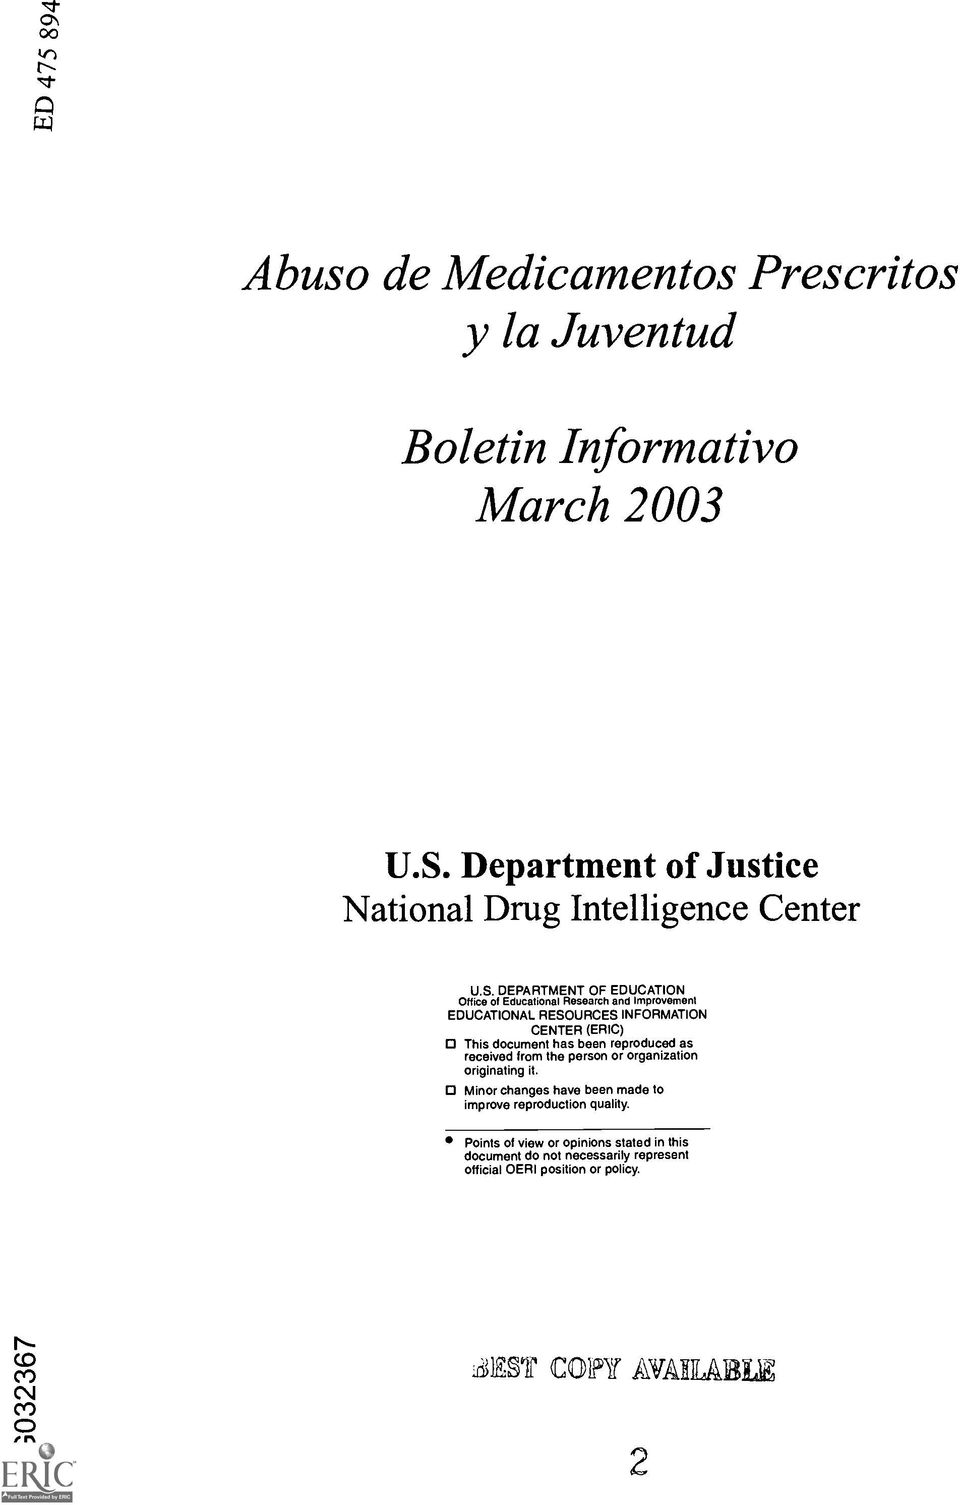 DEPARTMENT OF EDUCATION Office of Educational Research and Improvement EDUCATIONAL RESOURCES INFORMATION CENTER (ERIC) This document has